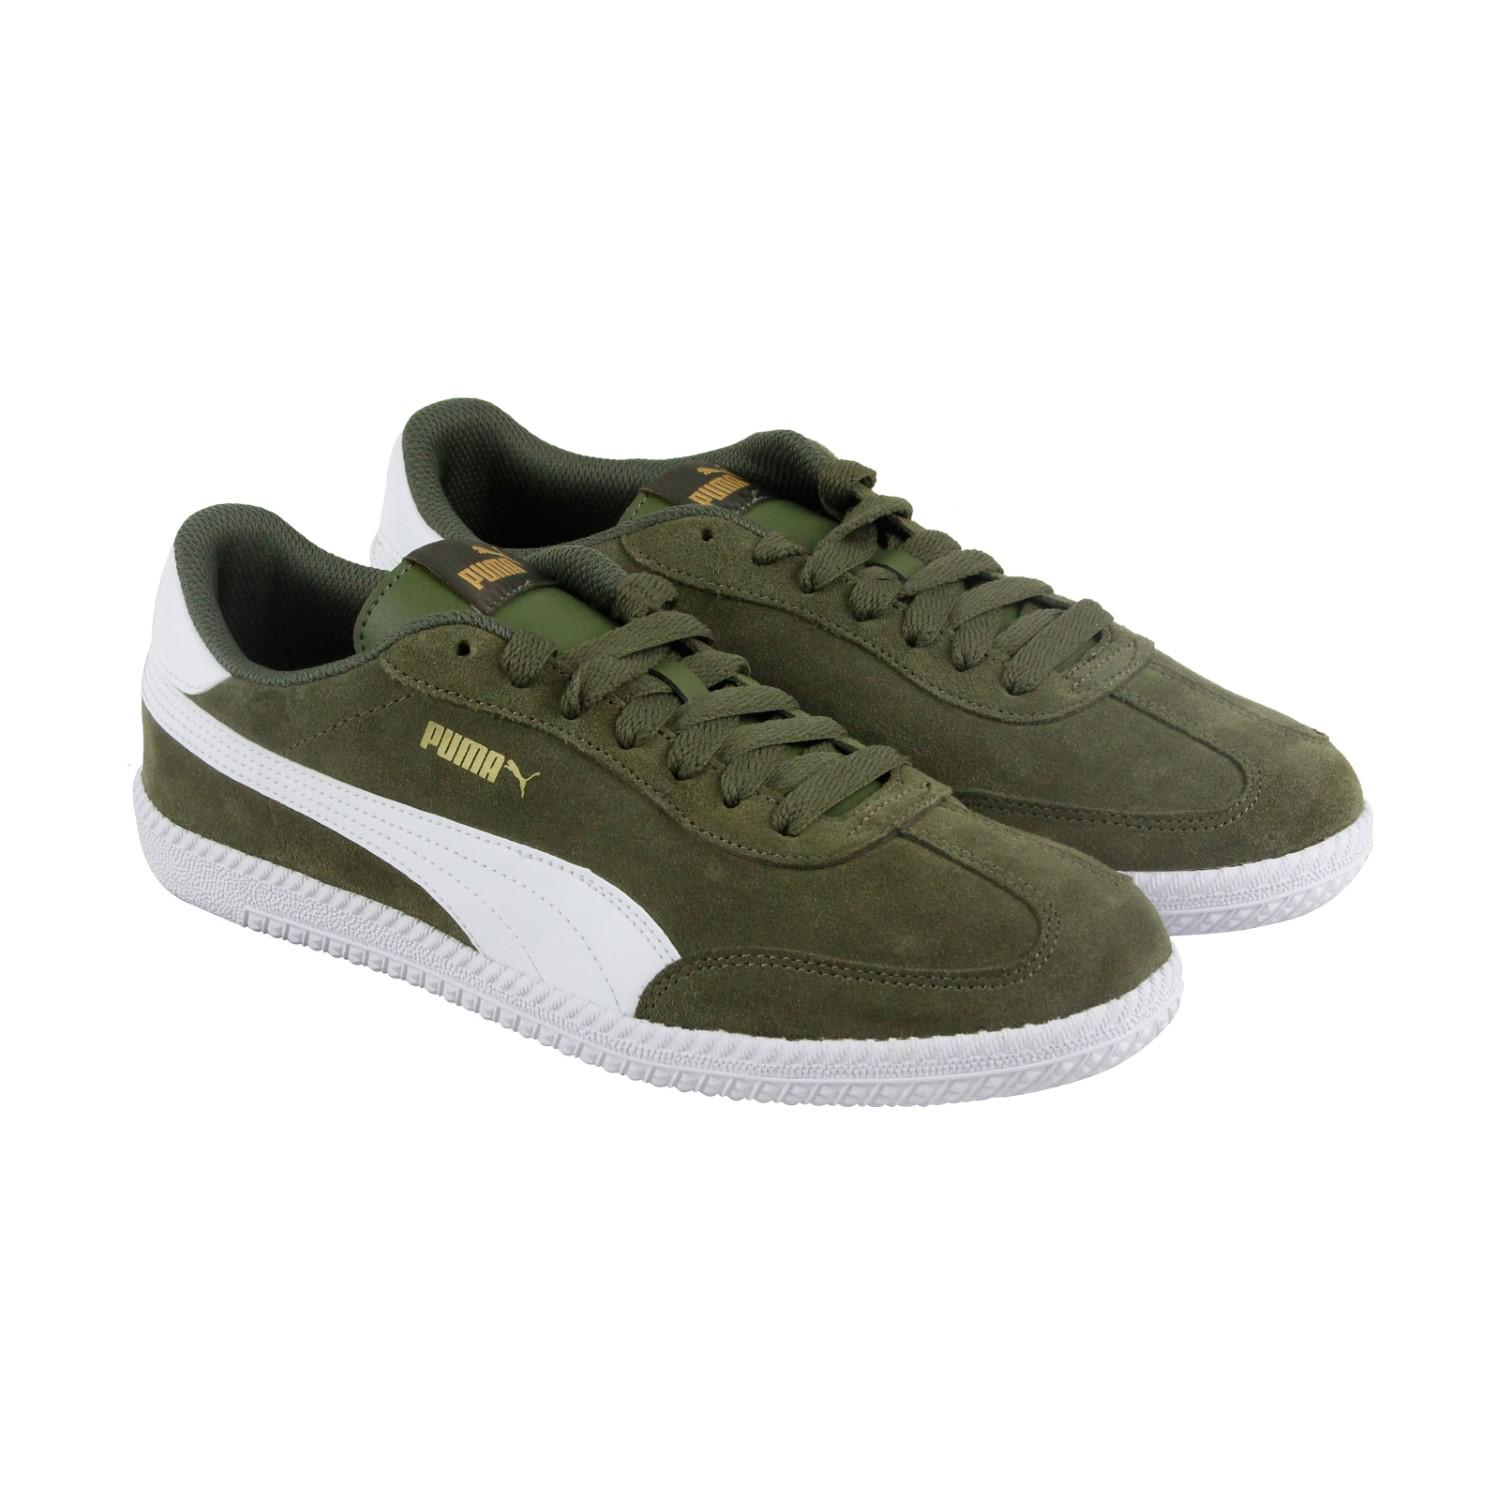 d4ecab0b16b Lyst - PUMA Astro Cup Olive Night White Mens Lace Up Sneakers in ...